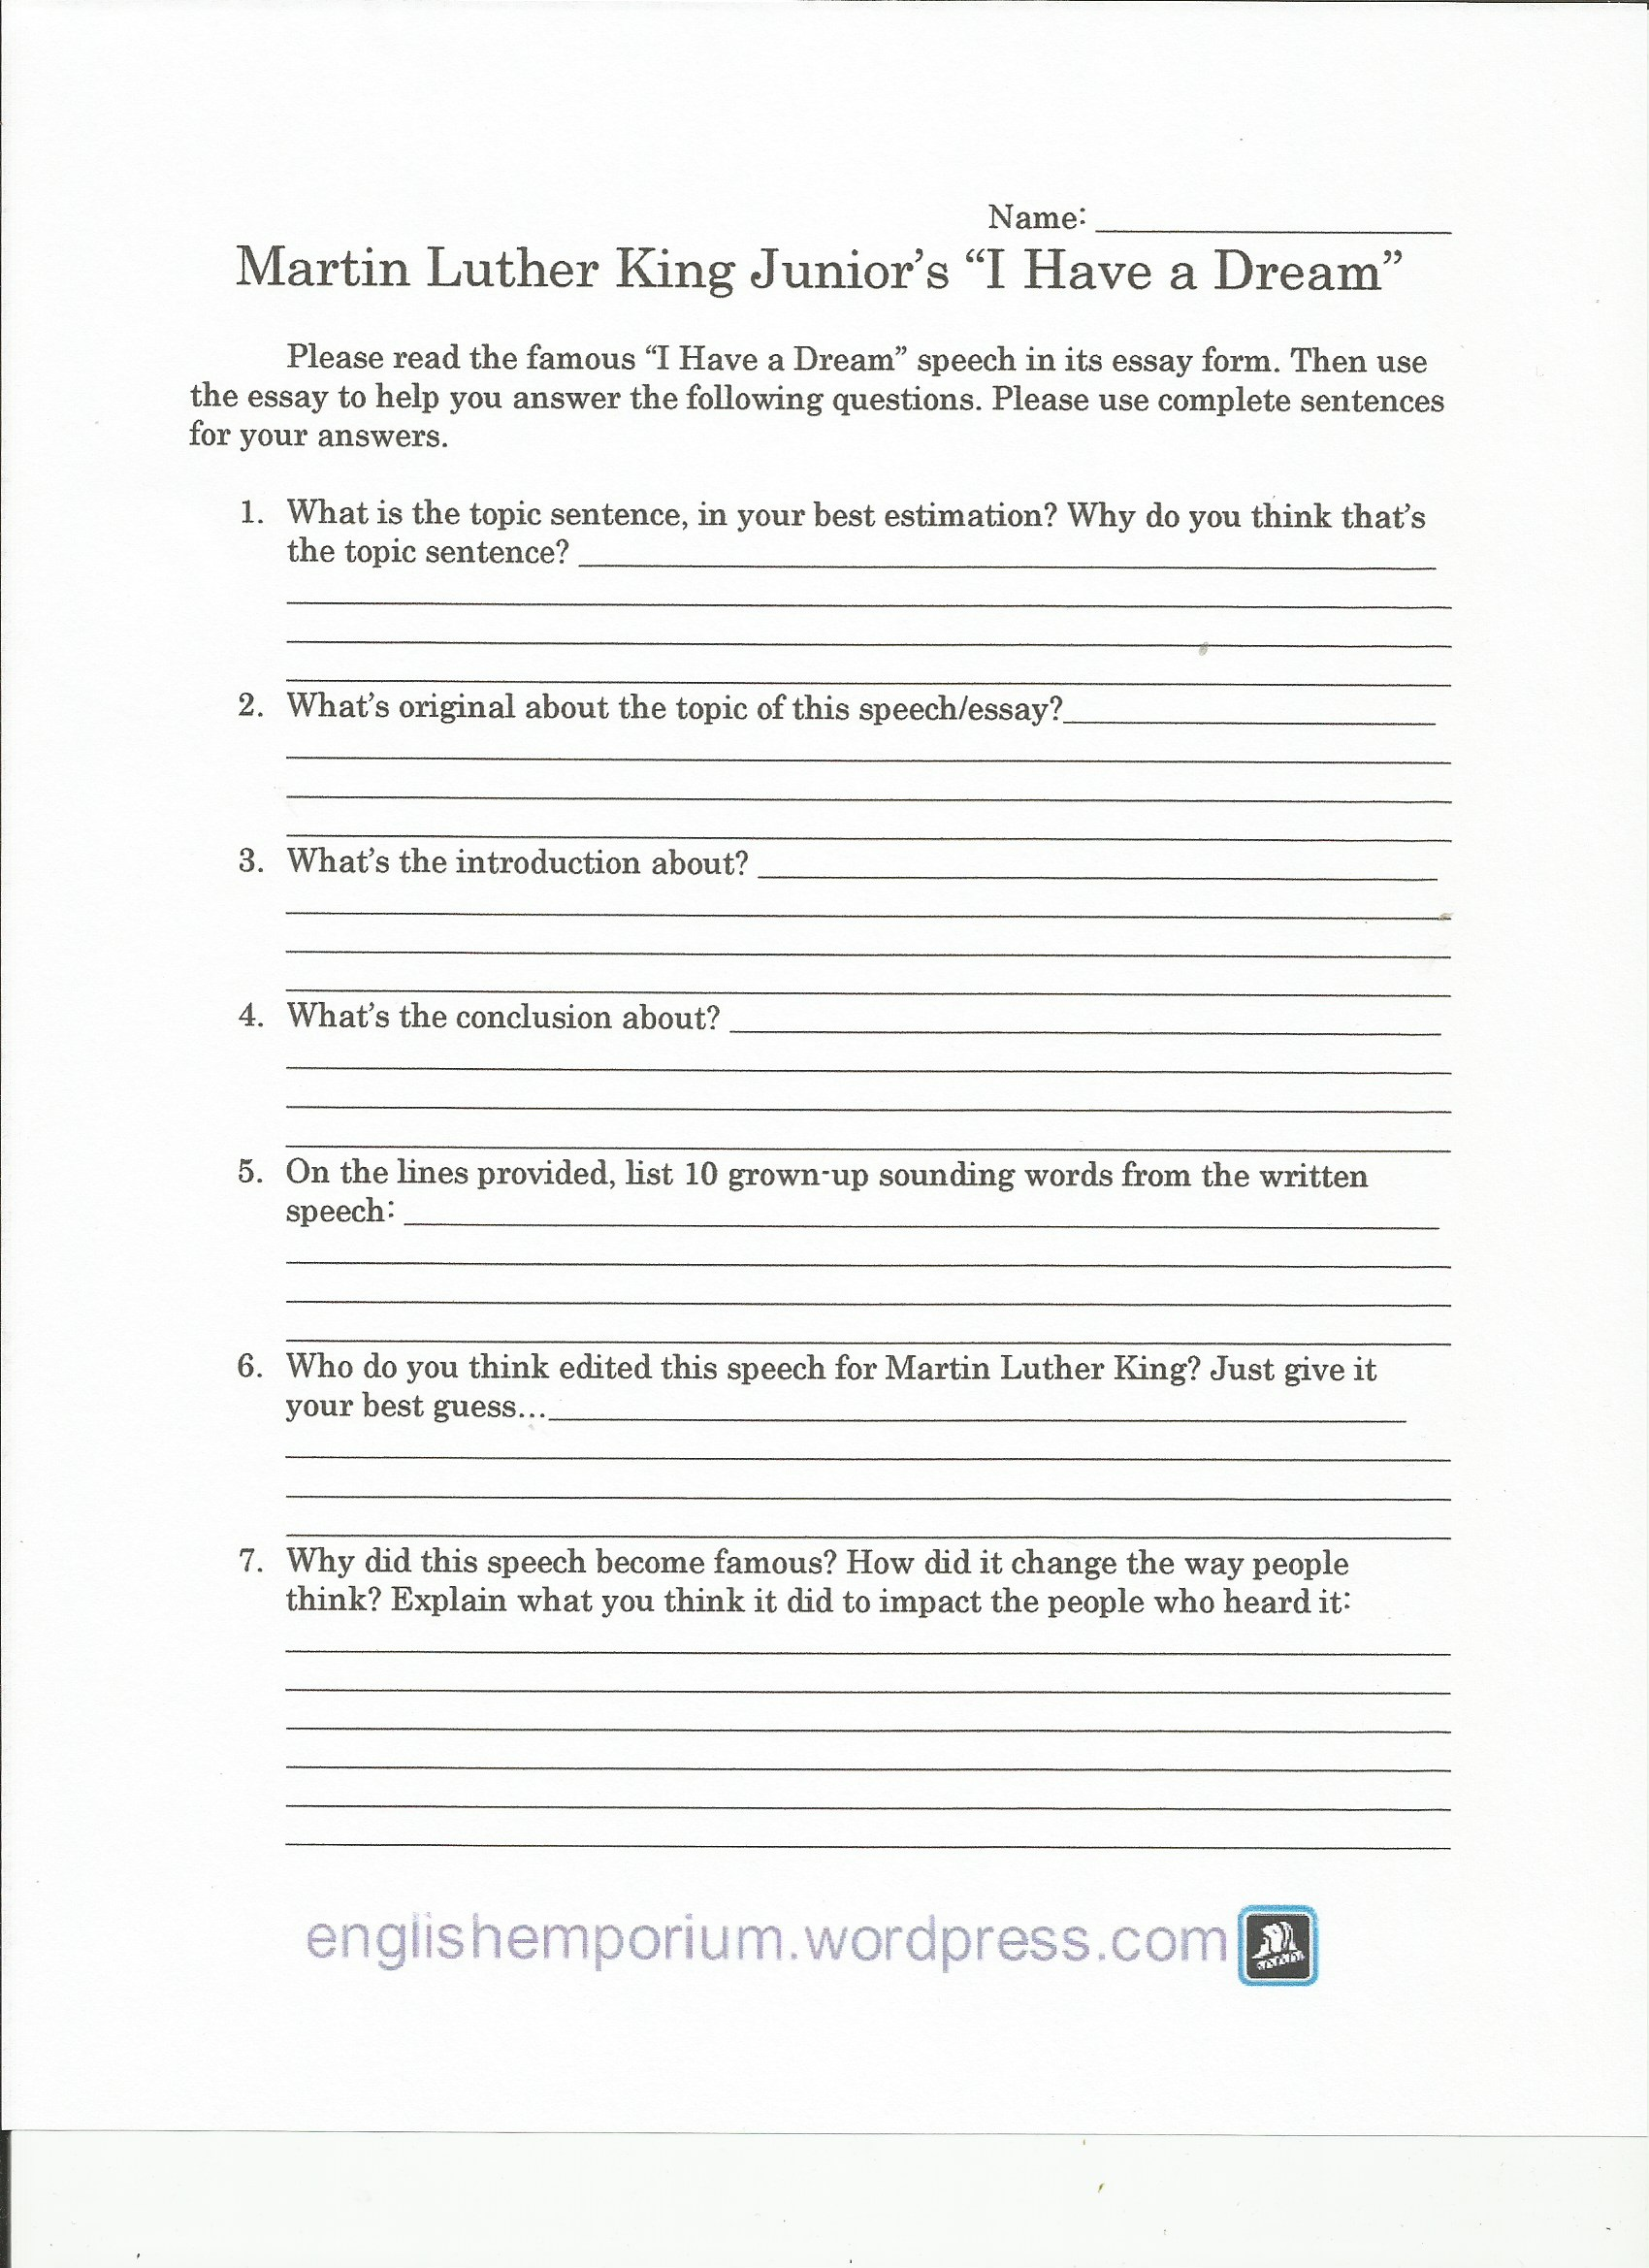 011 I Have Dream Essay Martin Luther King Worksheet Page1 Frightening A Contest Prompt Writing High School Full